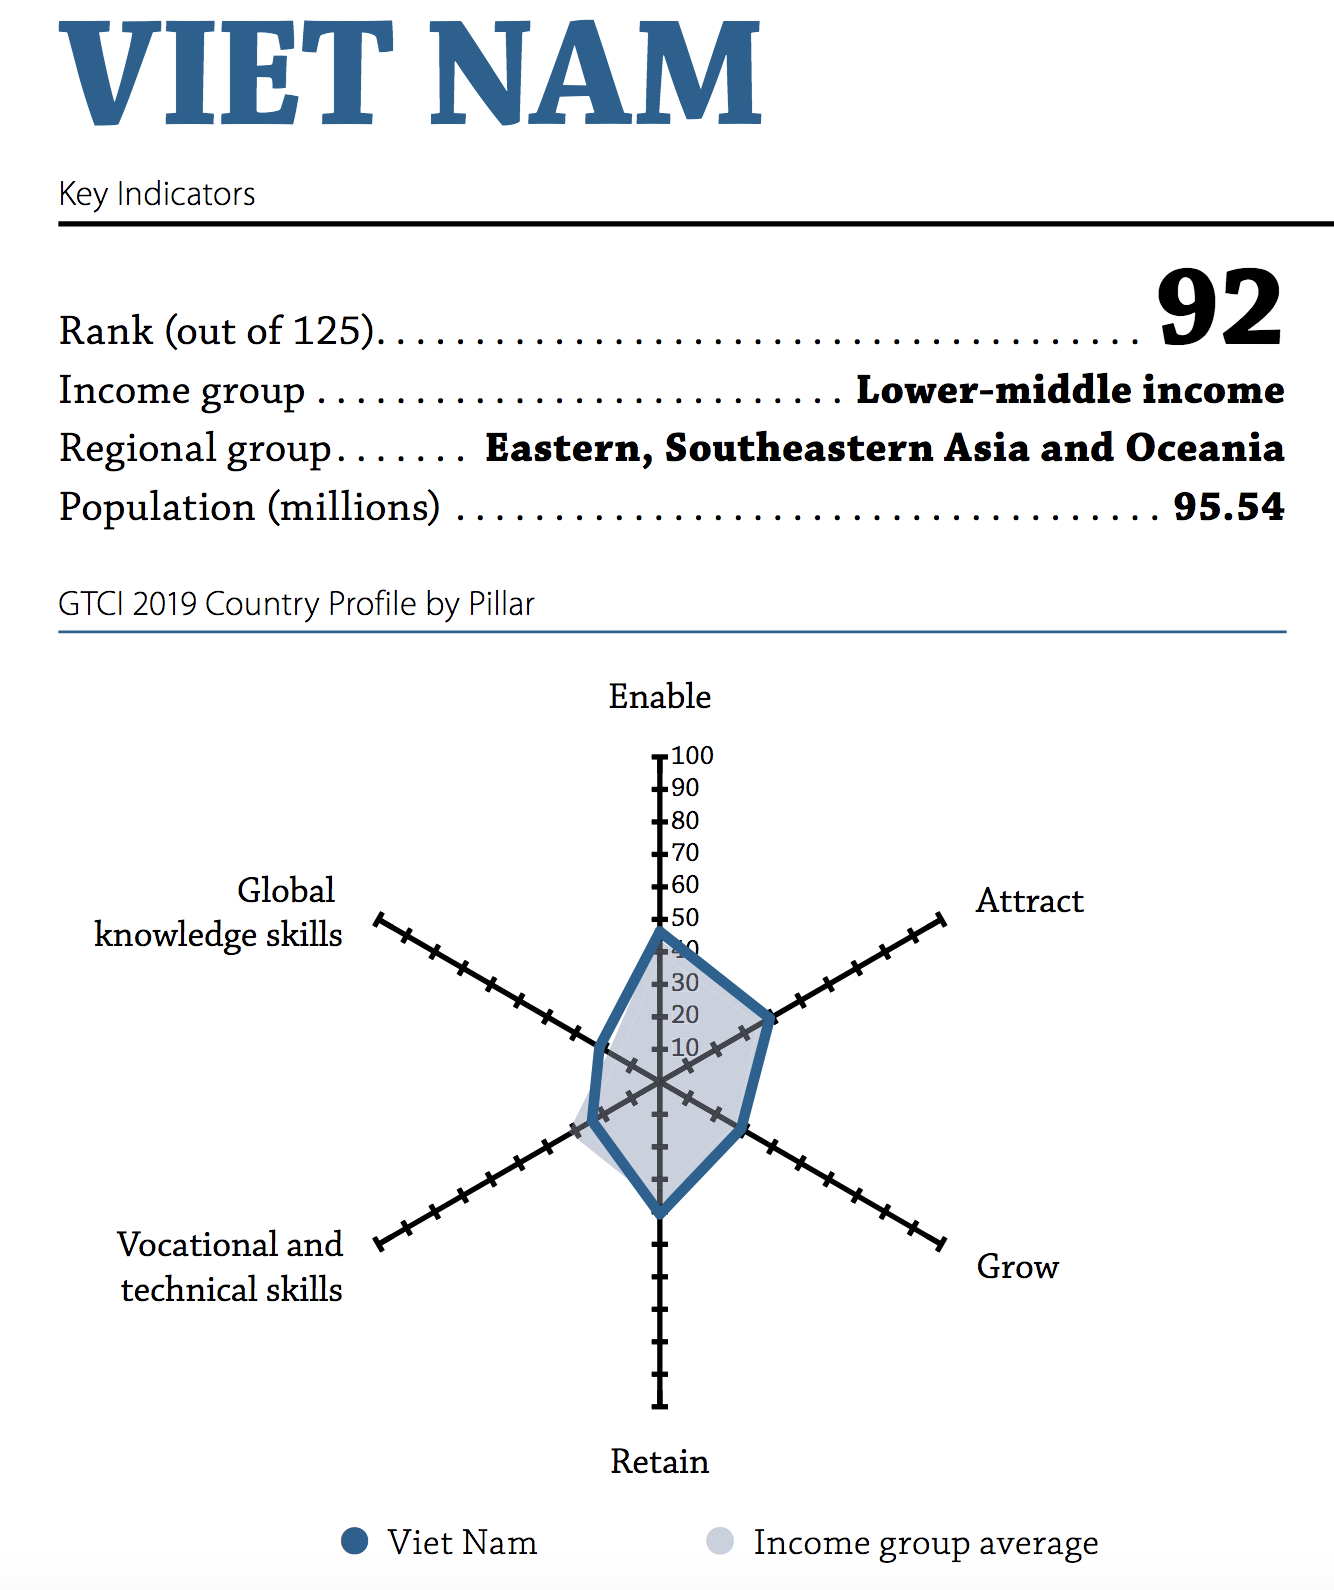 Thứ hạng của Việt Nam trong The Global Talent Competitiveness Index 2019 (nguồn: www.insead.edu)